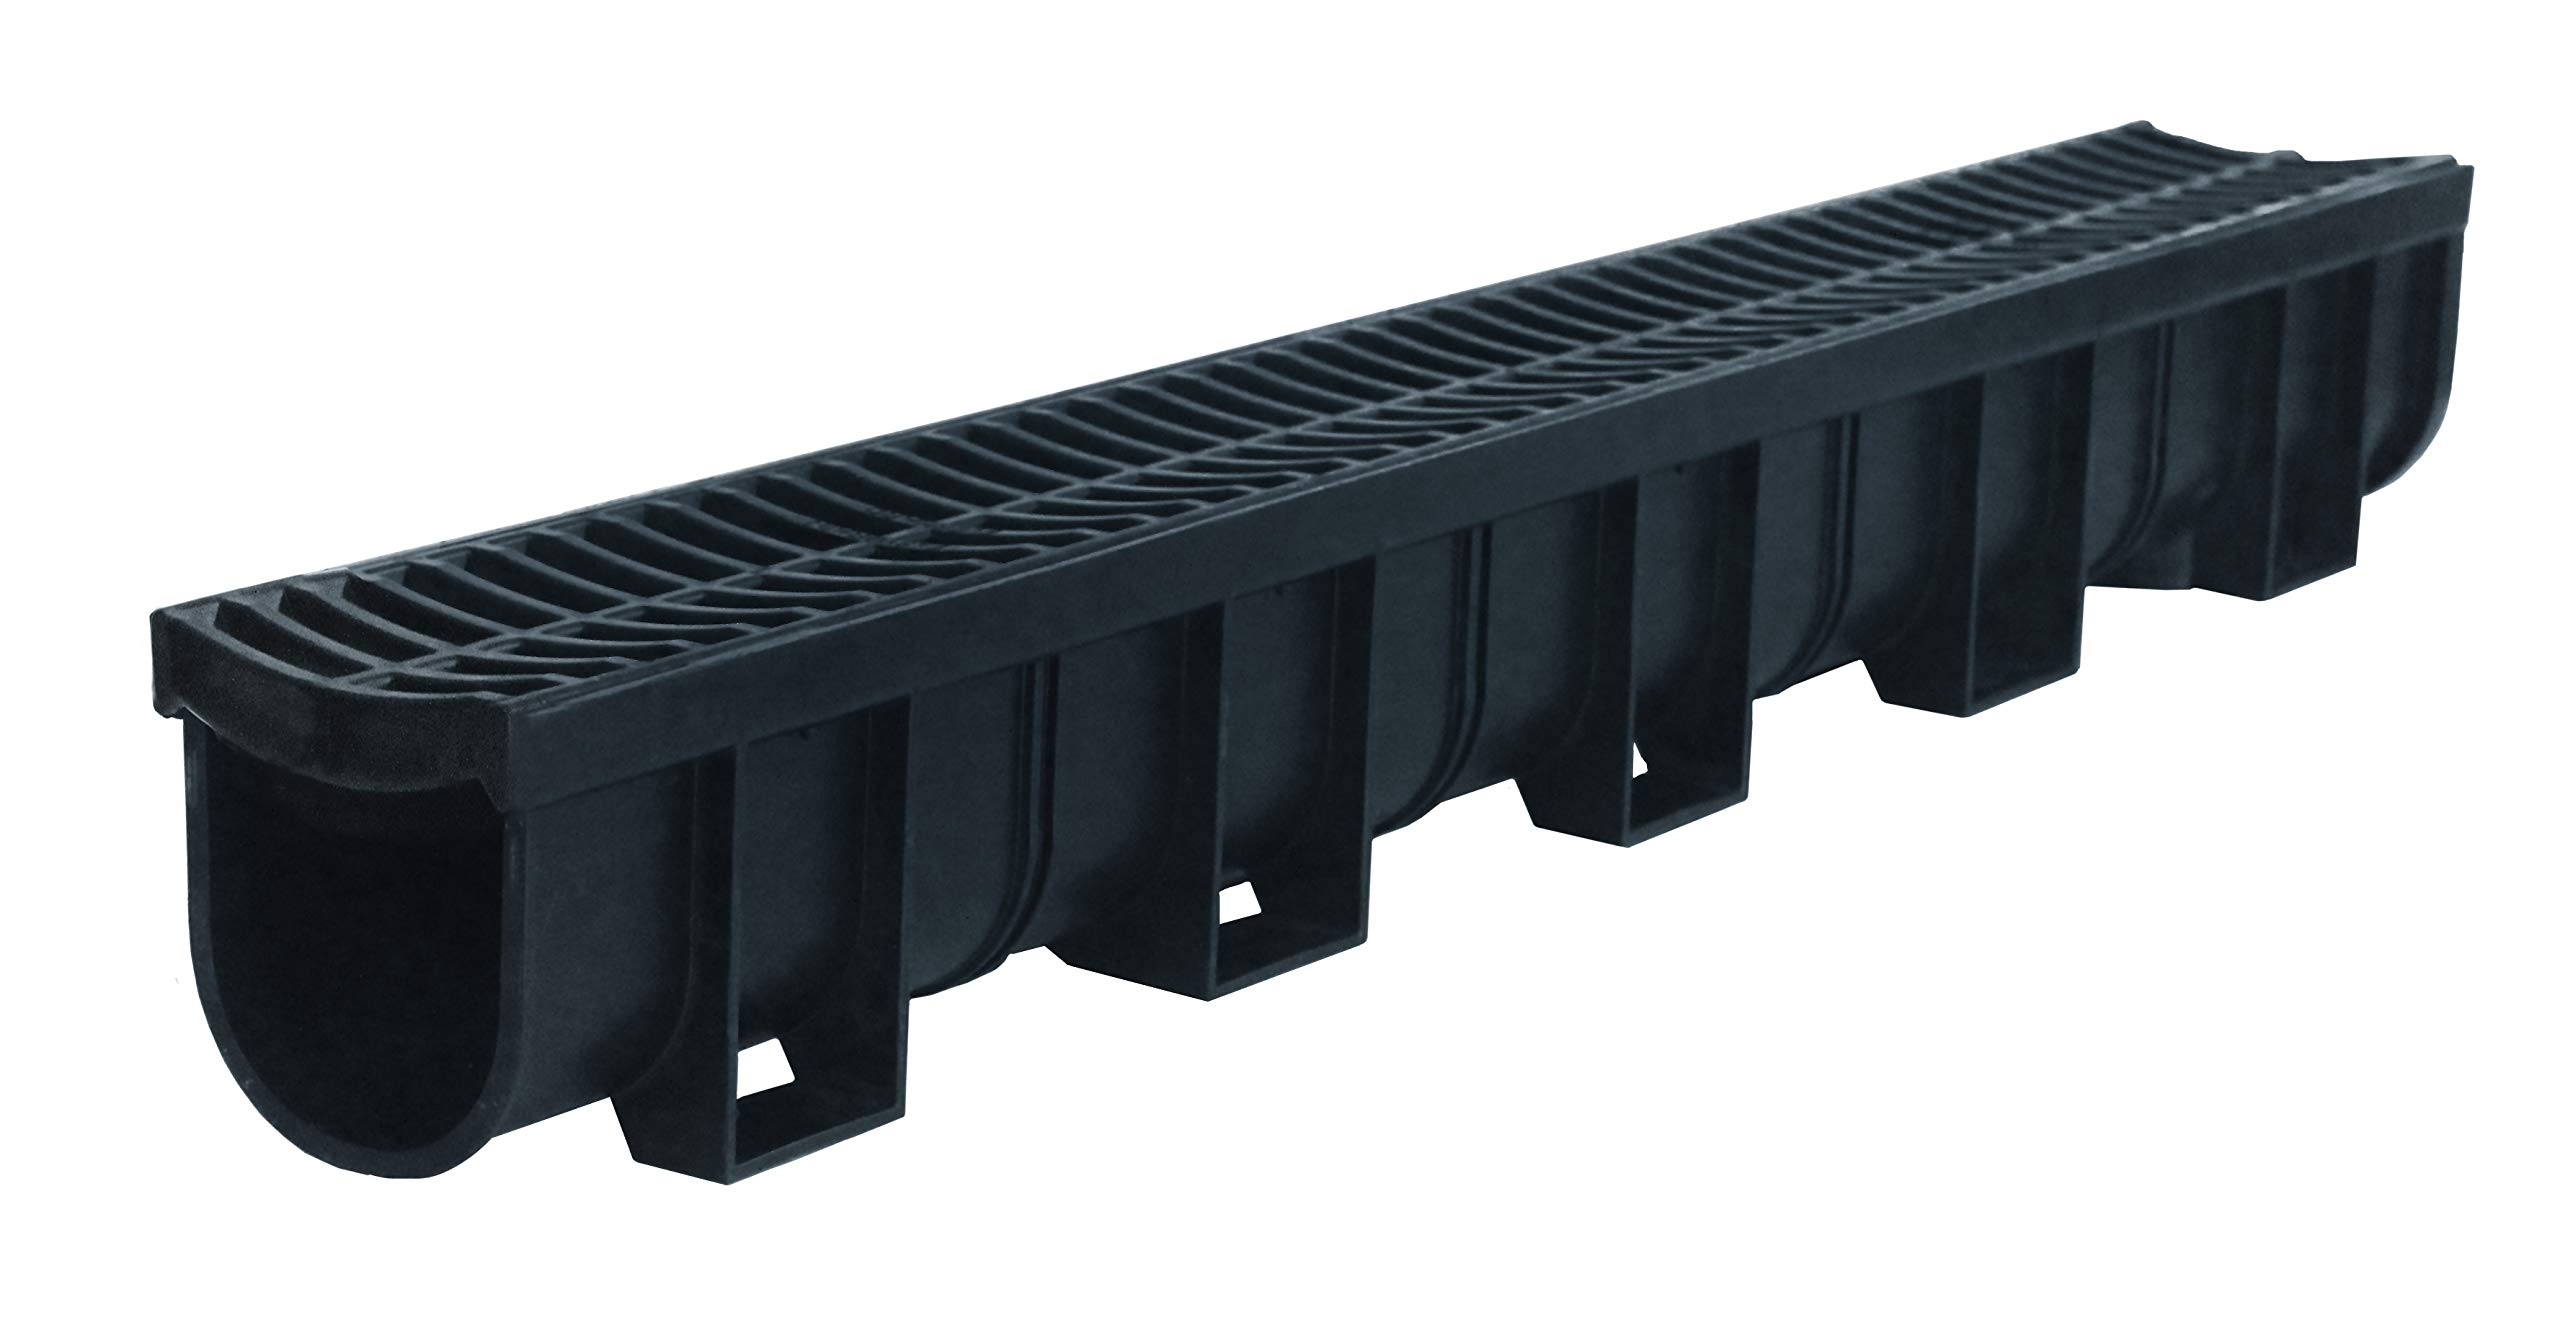 US TRENCH DRAIN, 83300 - 3.33 ft Regular Trench Drain - Black Polymer, Heel Friendly Grate - For Drainage Systems, Driveway, Basement, Pools, etc.